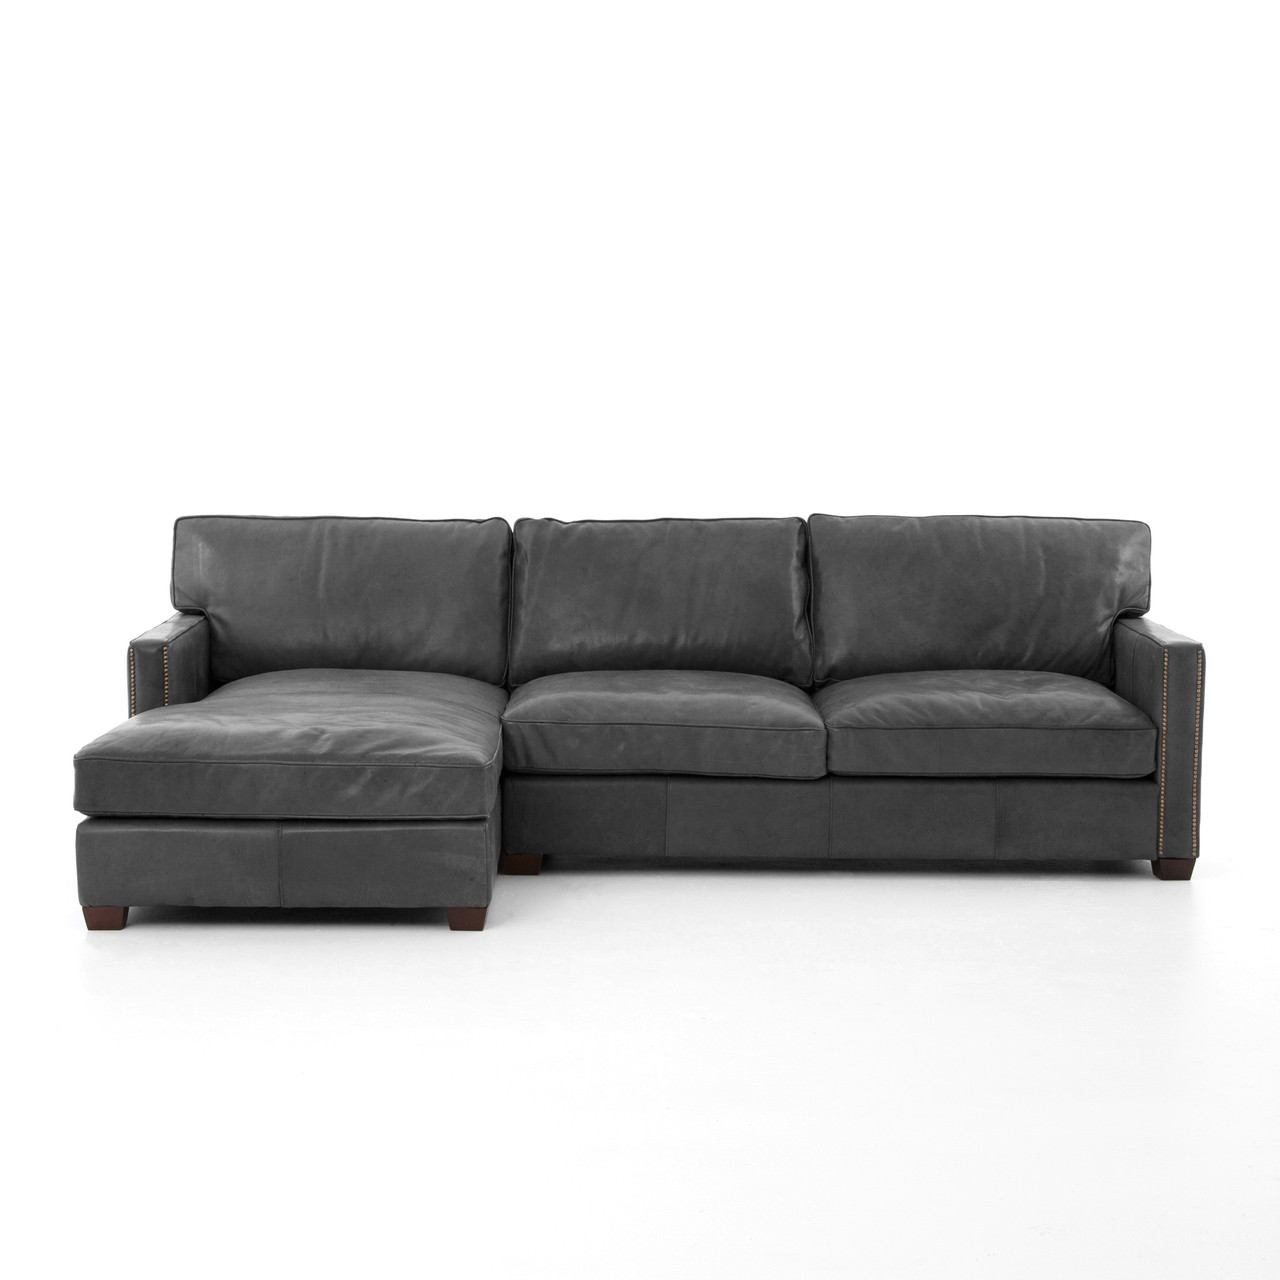 Black leather sectional sofa with chaise for Black leather chaise sofa